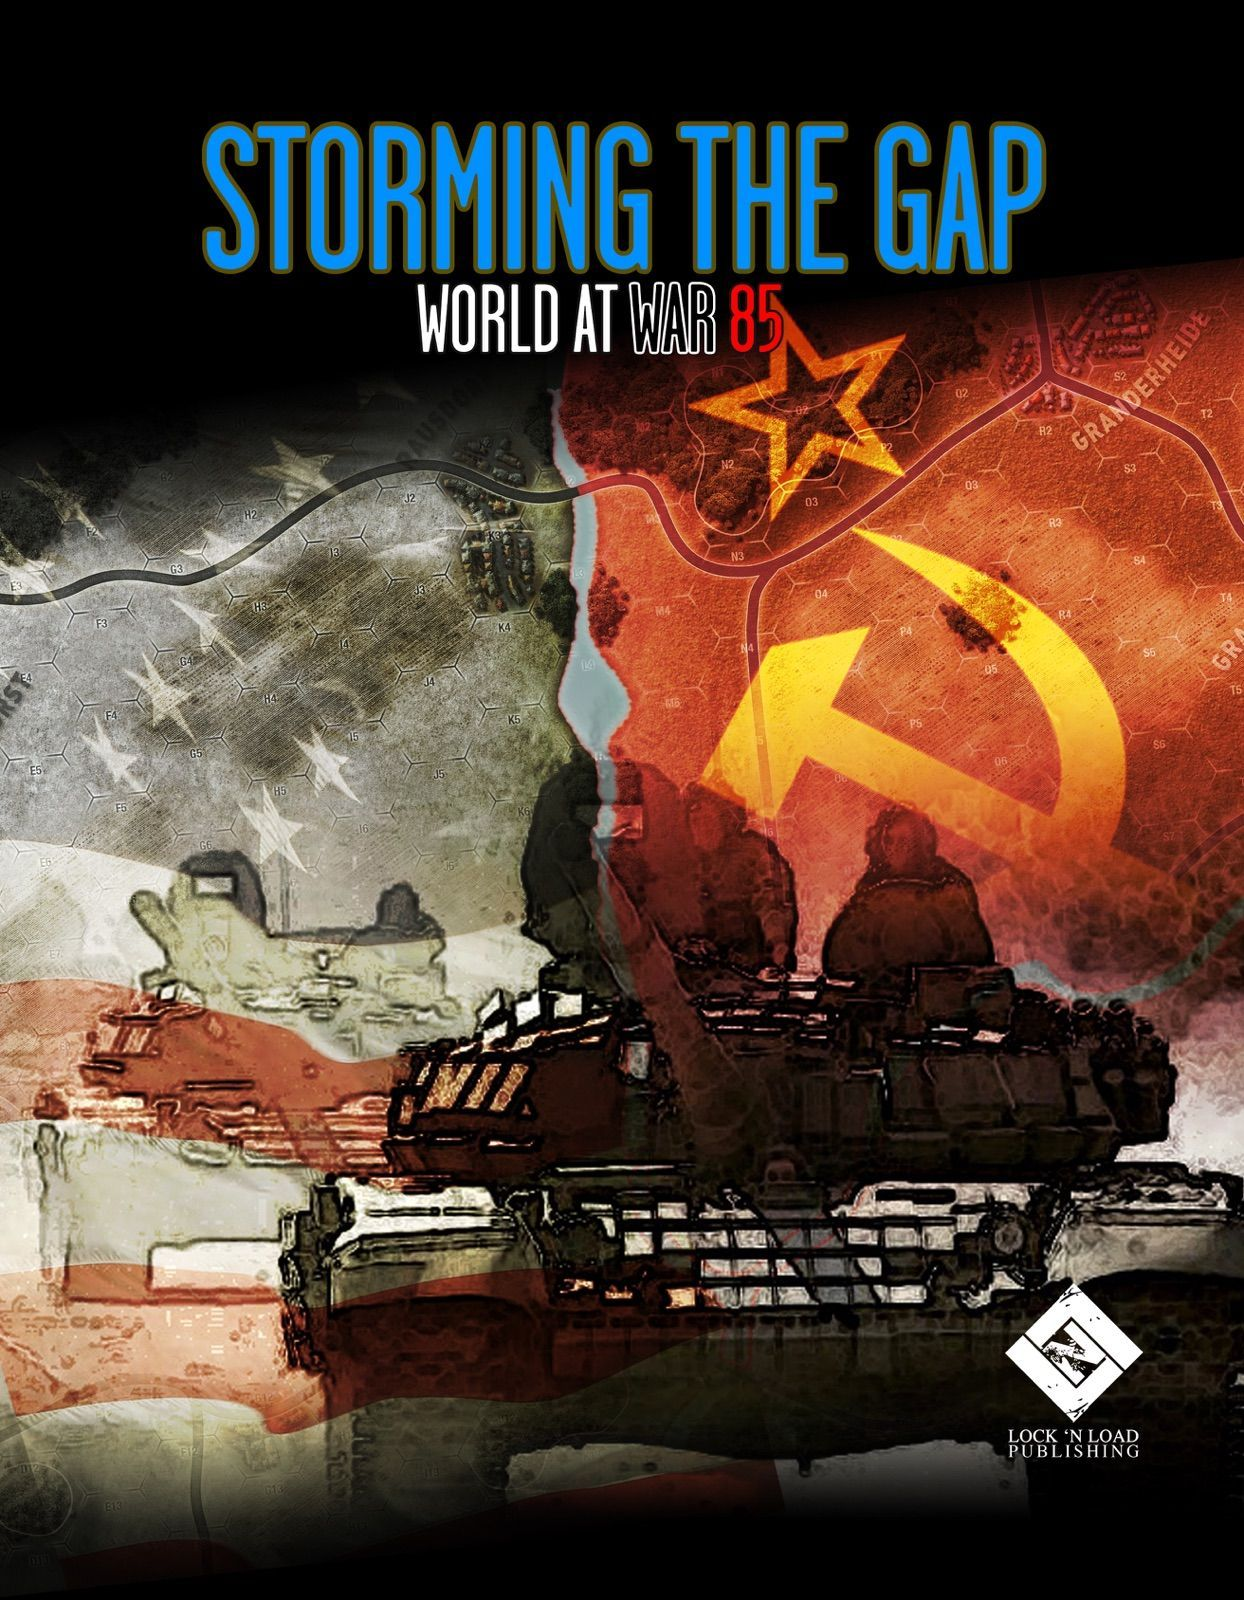 World At War 85: Storming the Gap